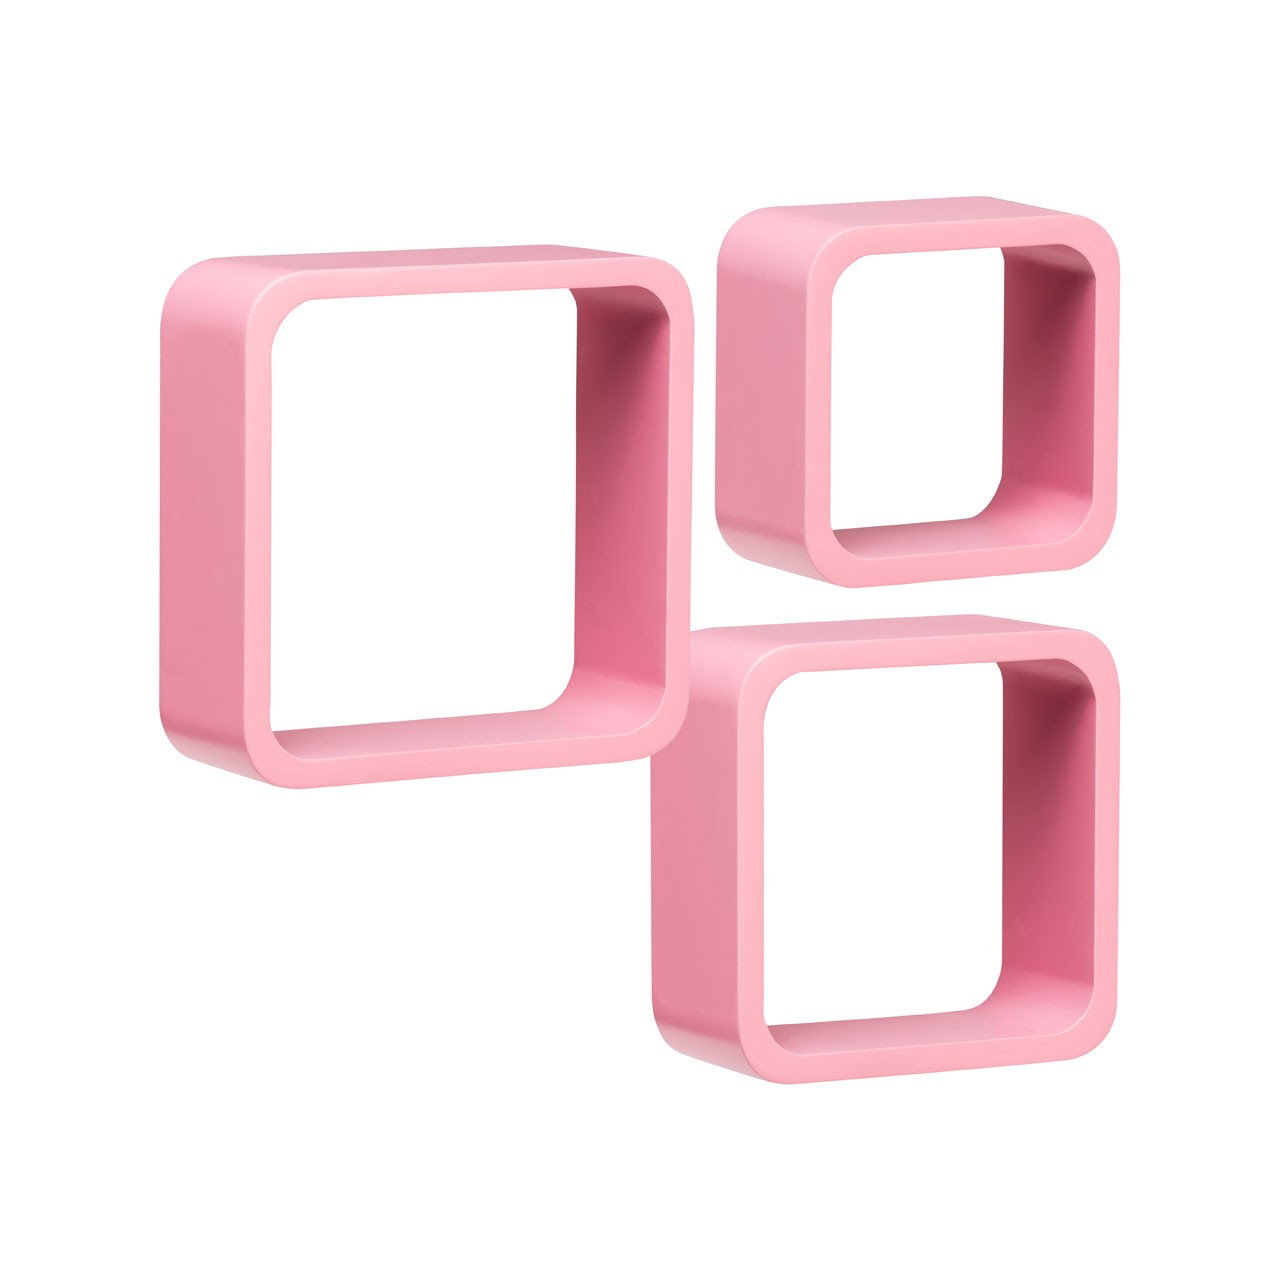 Wall Cubes, Set of 3, Pink